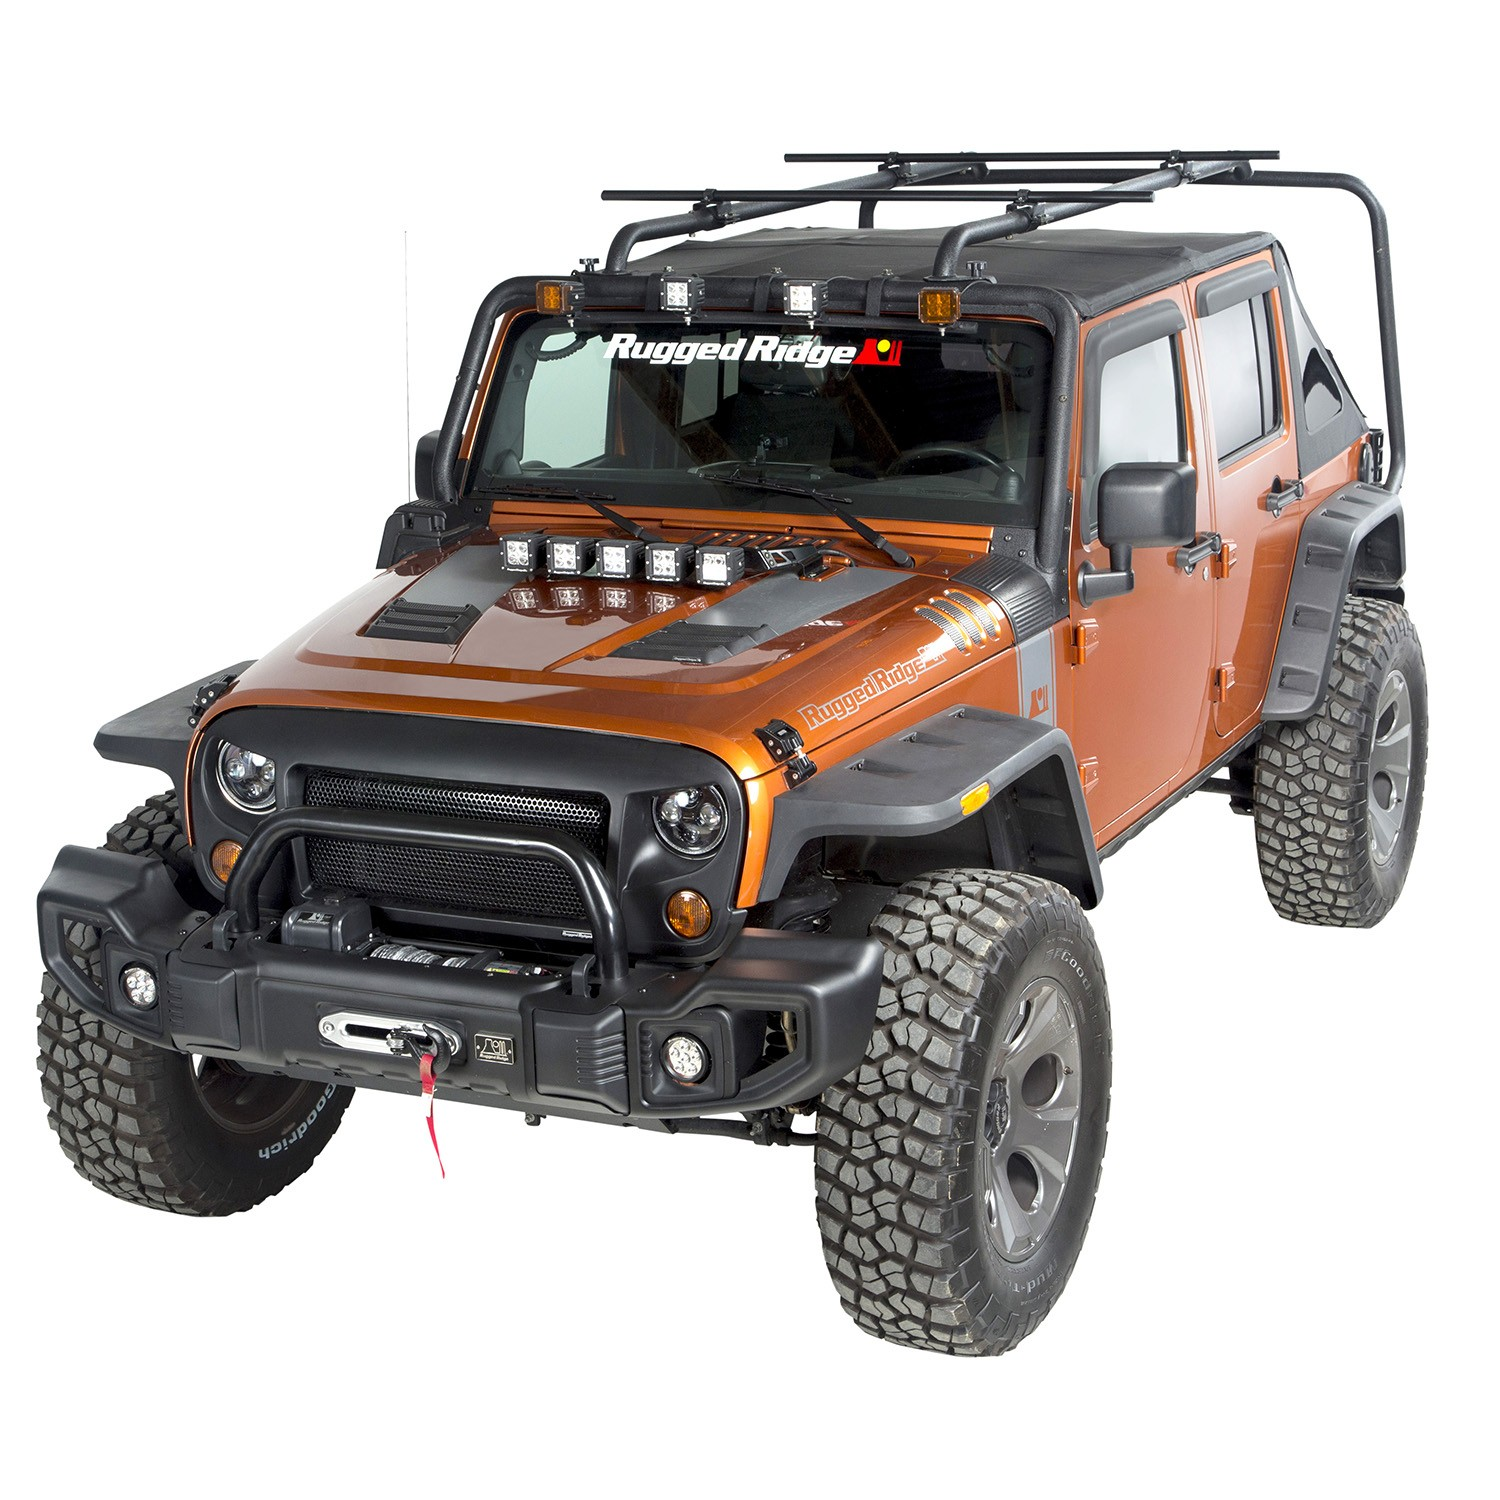 Sherpa Roof Rack Crossbars, Round, 56.5 inches, 07-15 Wrangler